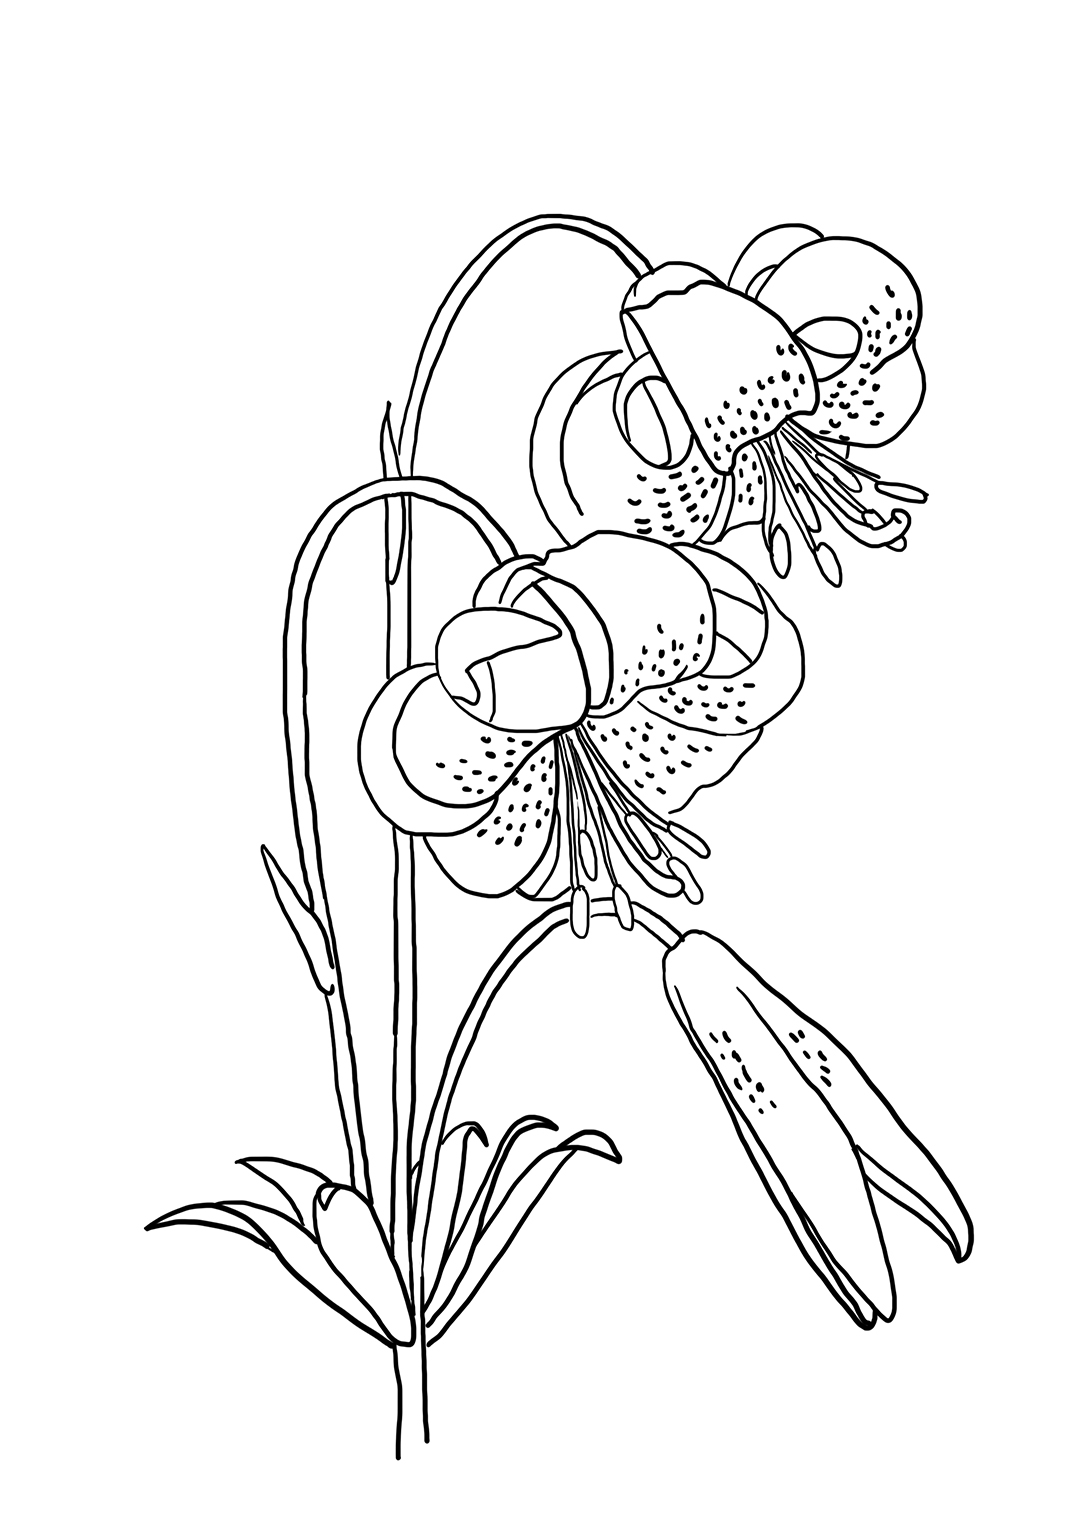 coloring pictures of a flower flowers coloring pages coloringpages1001com of pictures flower coloring a